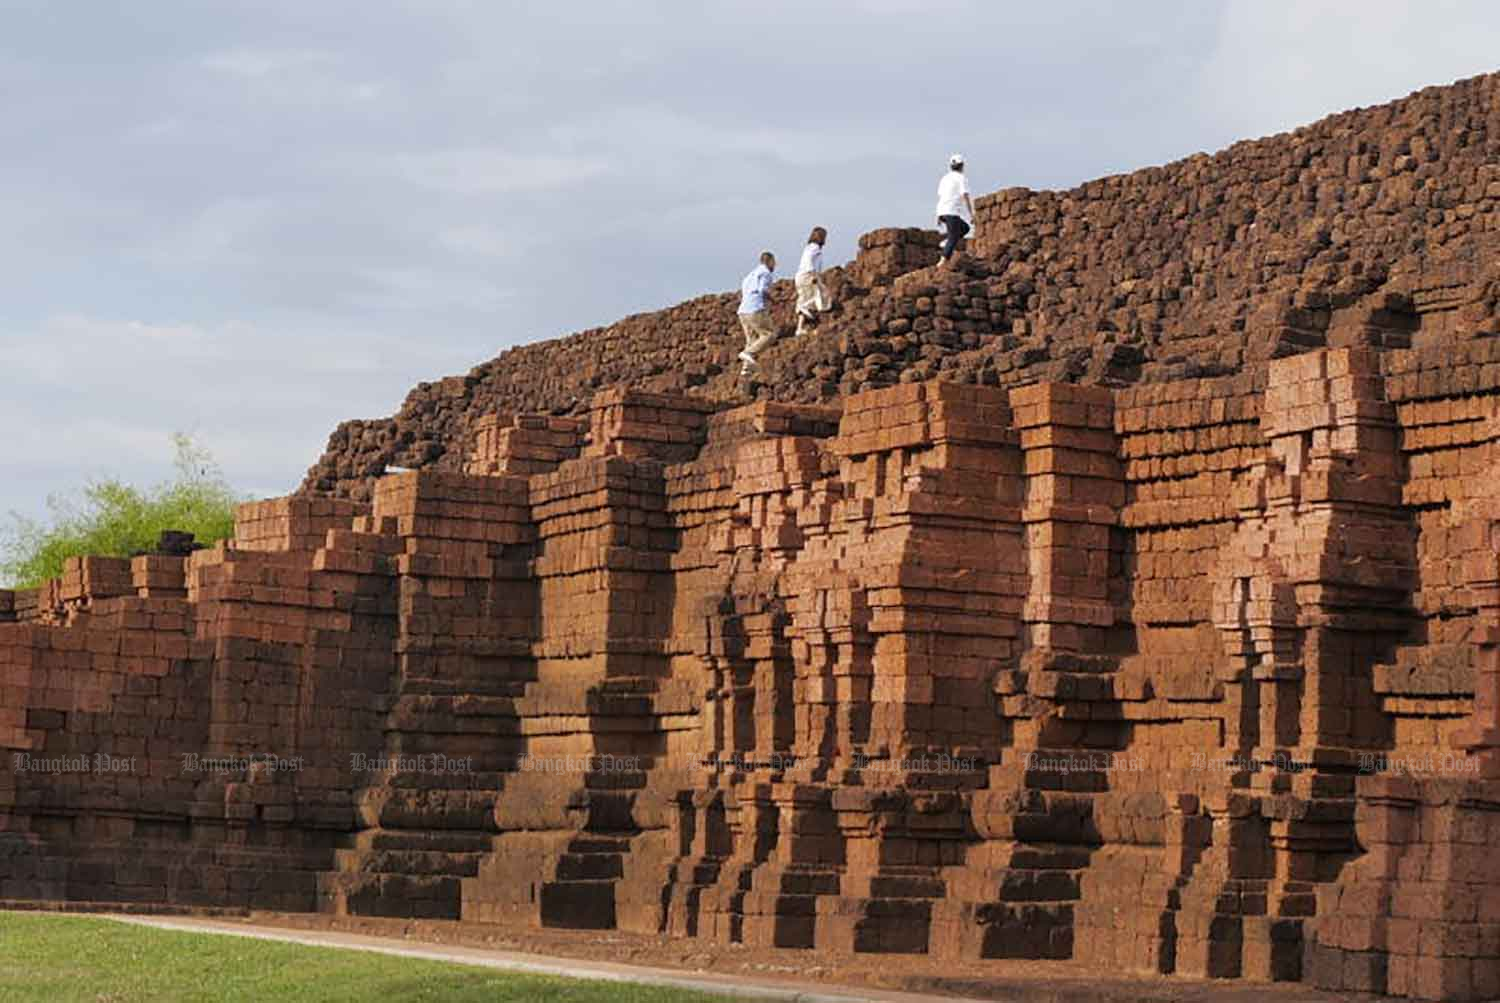 The huge Khao Khlang Nok stupa in the ancient city of Sri Thep is the biggest Dvaravati monument in the country. (Bangkok Post file photo)